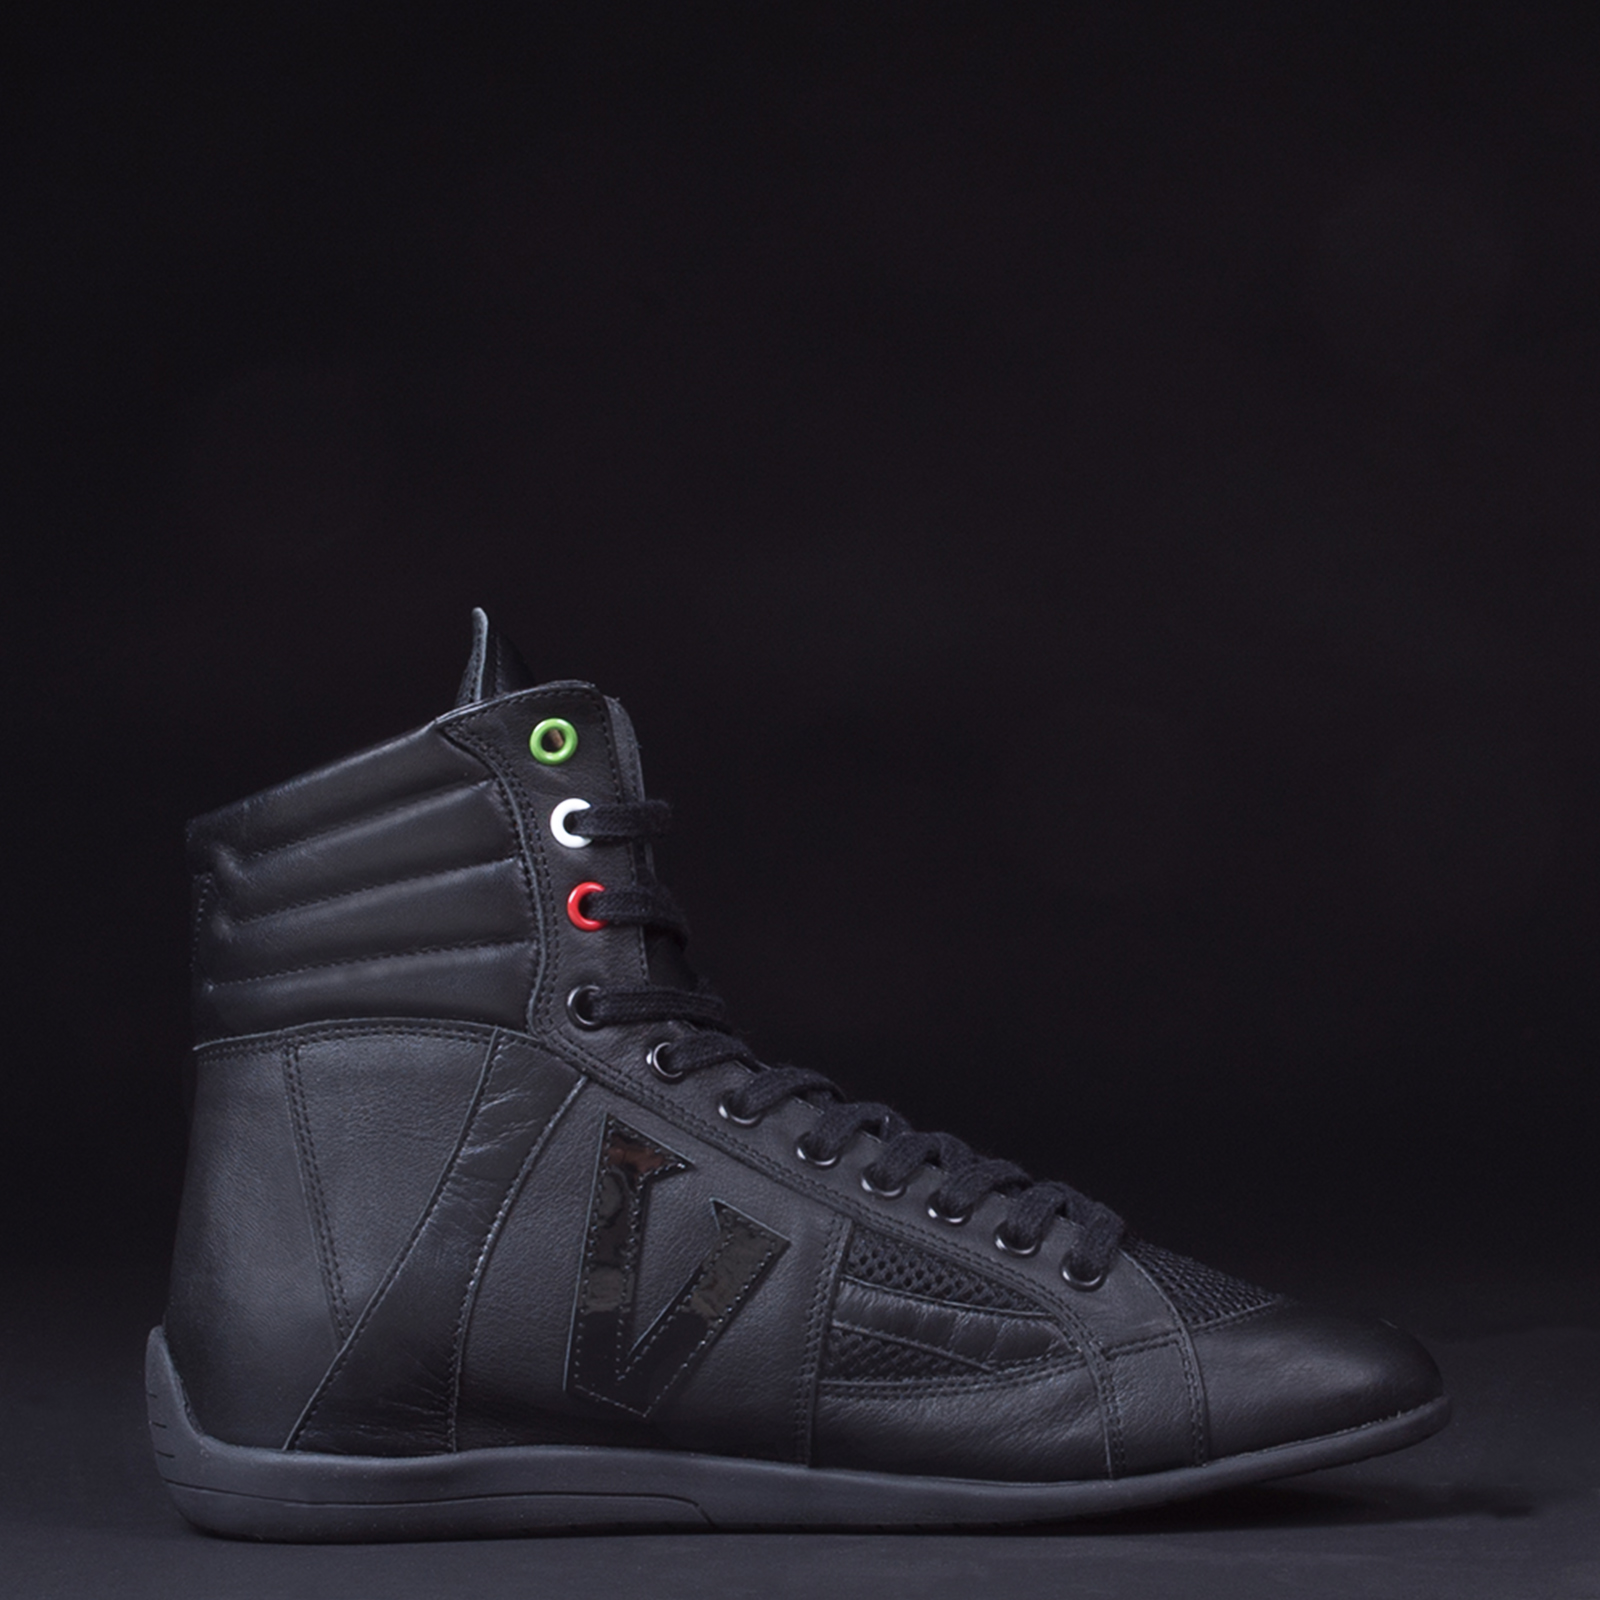 Top handmade leather boxing shoes